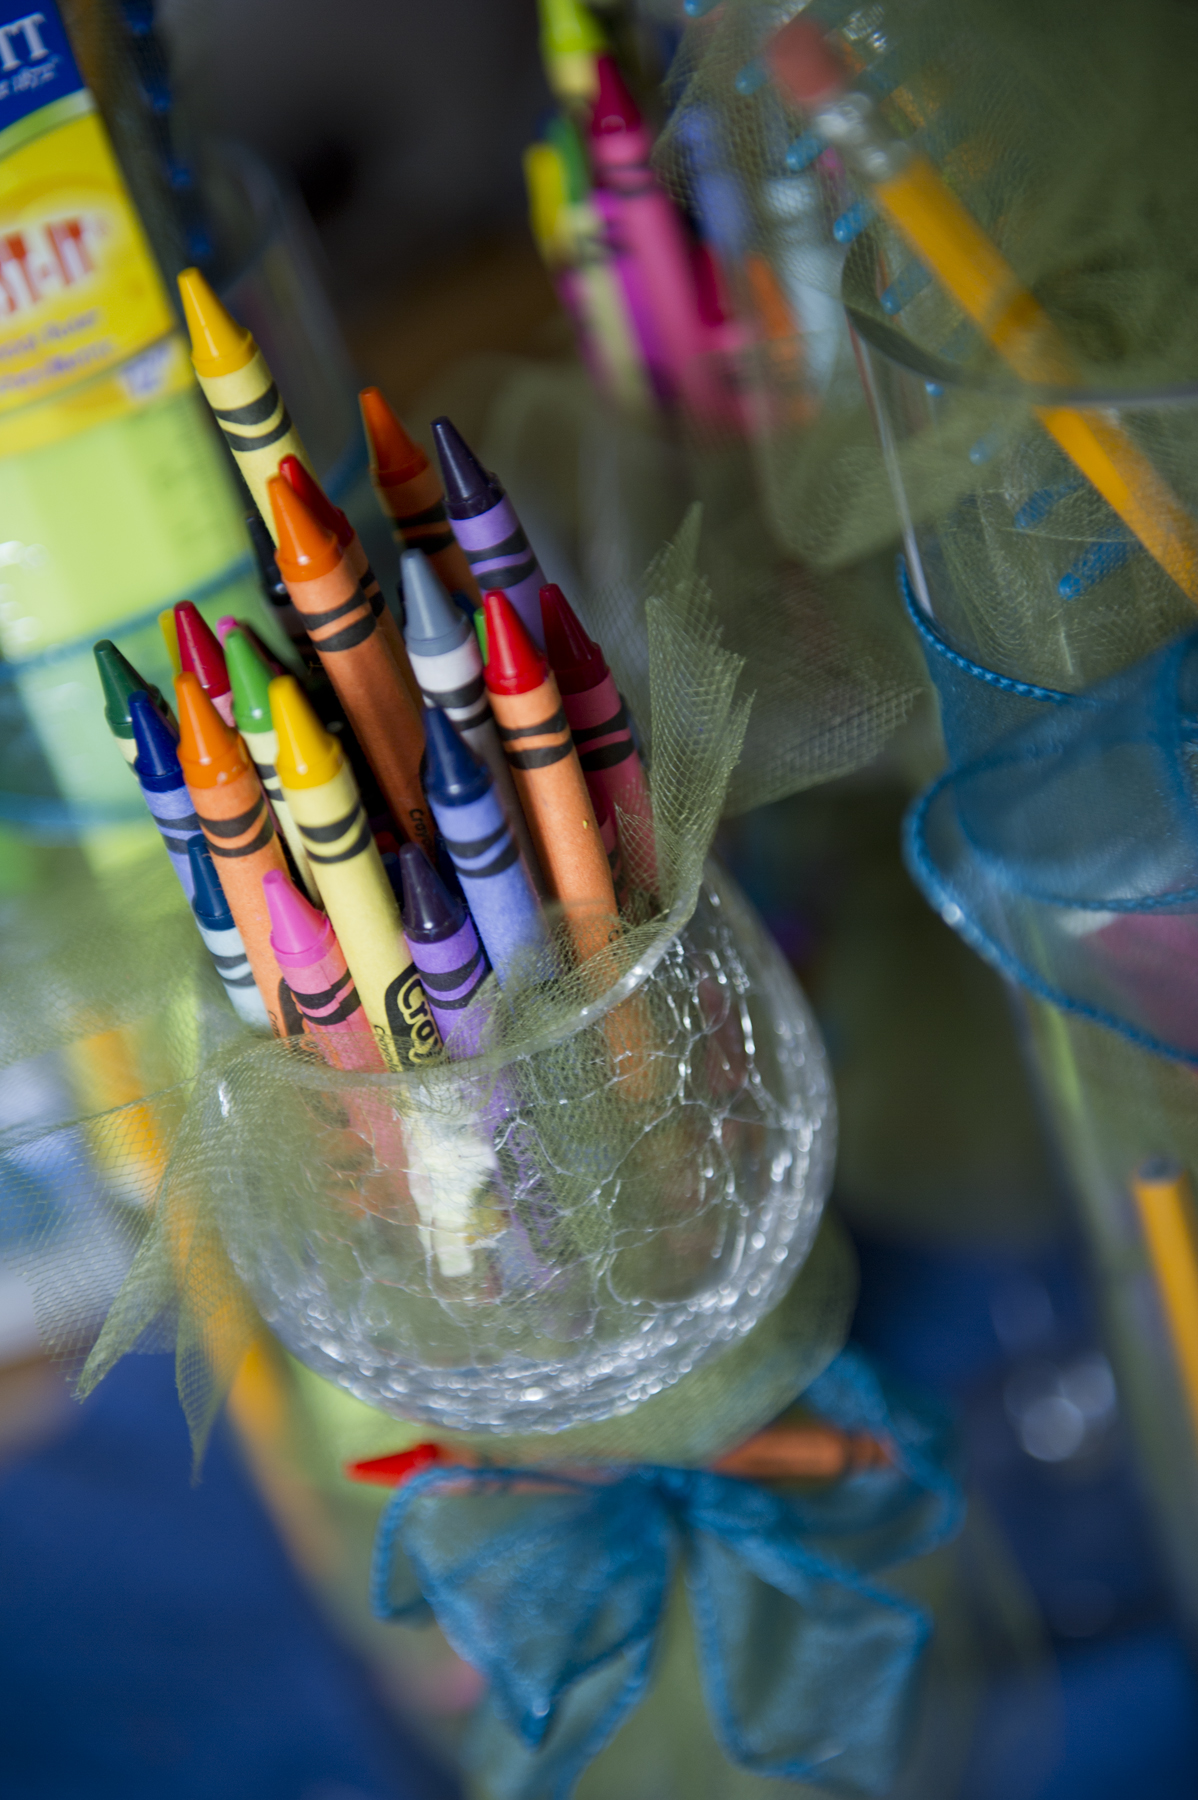 Mom being a school teacher crayons seemed the perfect centerpieces since they are wonderfully colorful